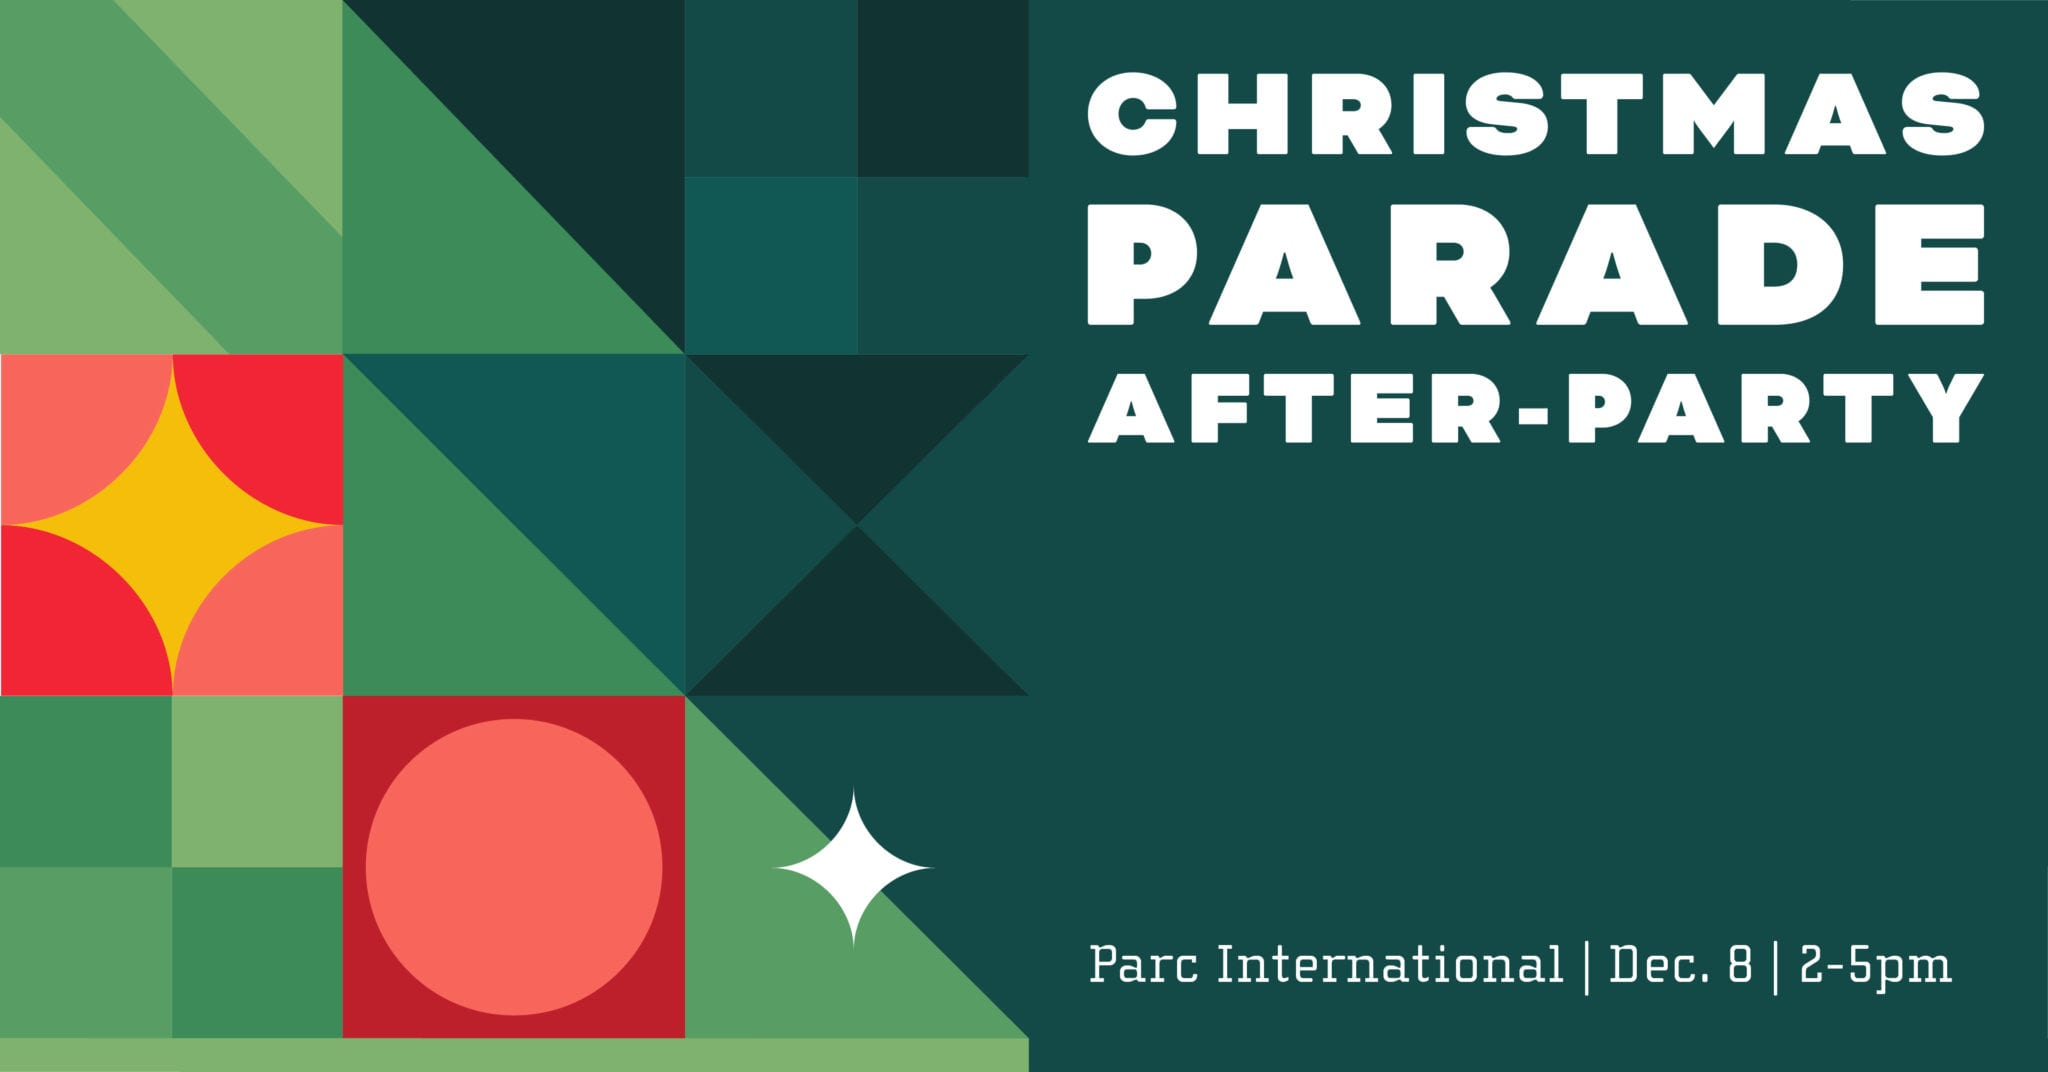 The Sonic Christmas Parade 2020 In Lafayette Louisiana Sonic Christmas Parade After Party | Downtown Lafayette Unlimited